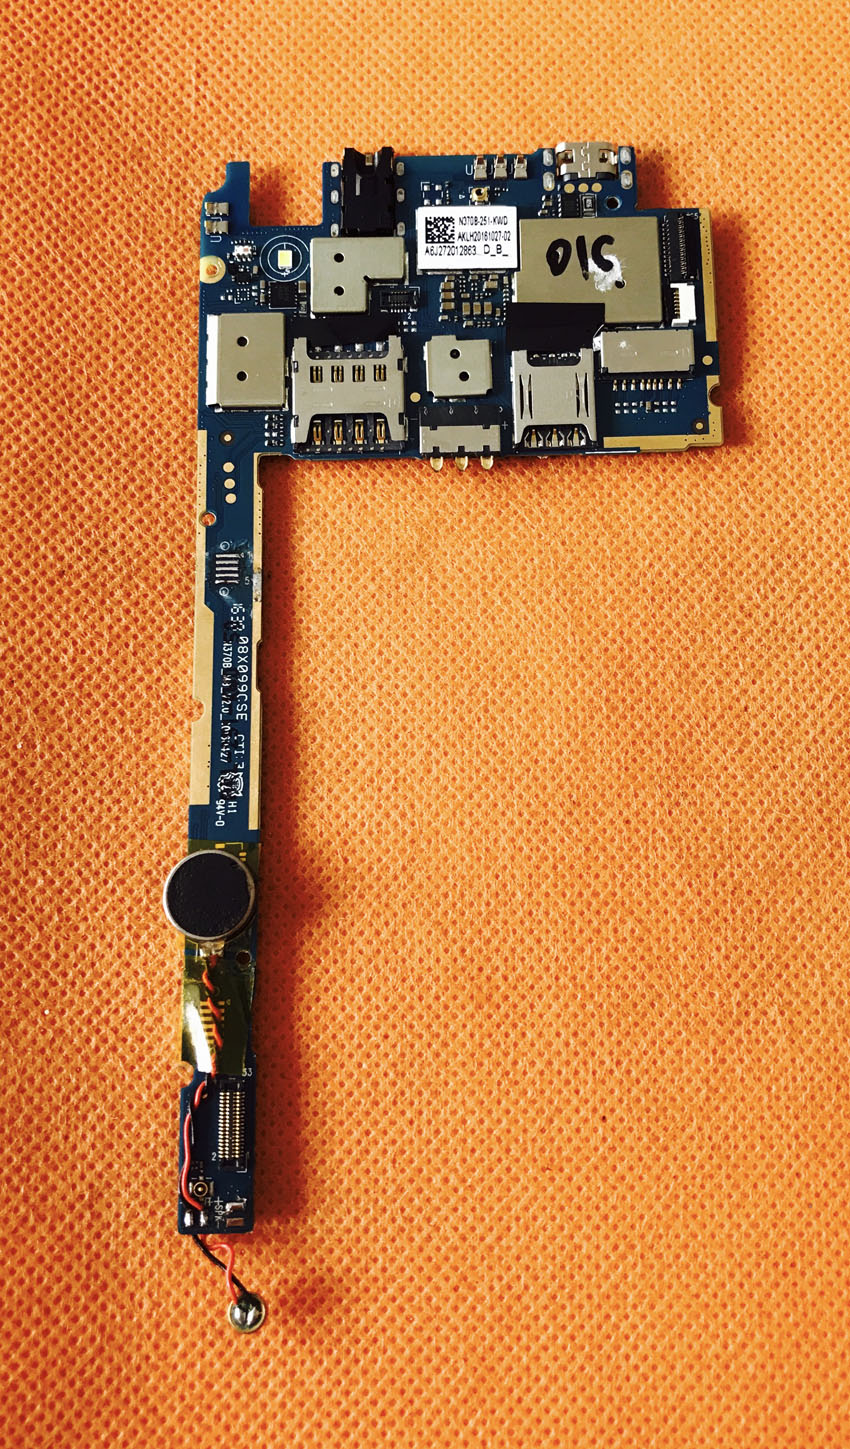 Used Original mainboard 2G RAM 16G ROM Motherboard for Doogee X5 Max pro MTK6737 Quad Core